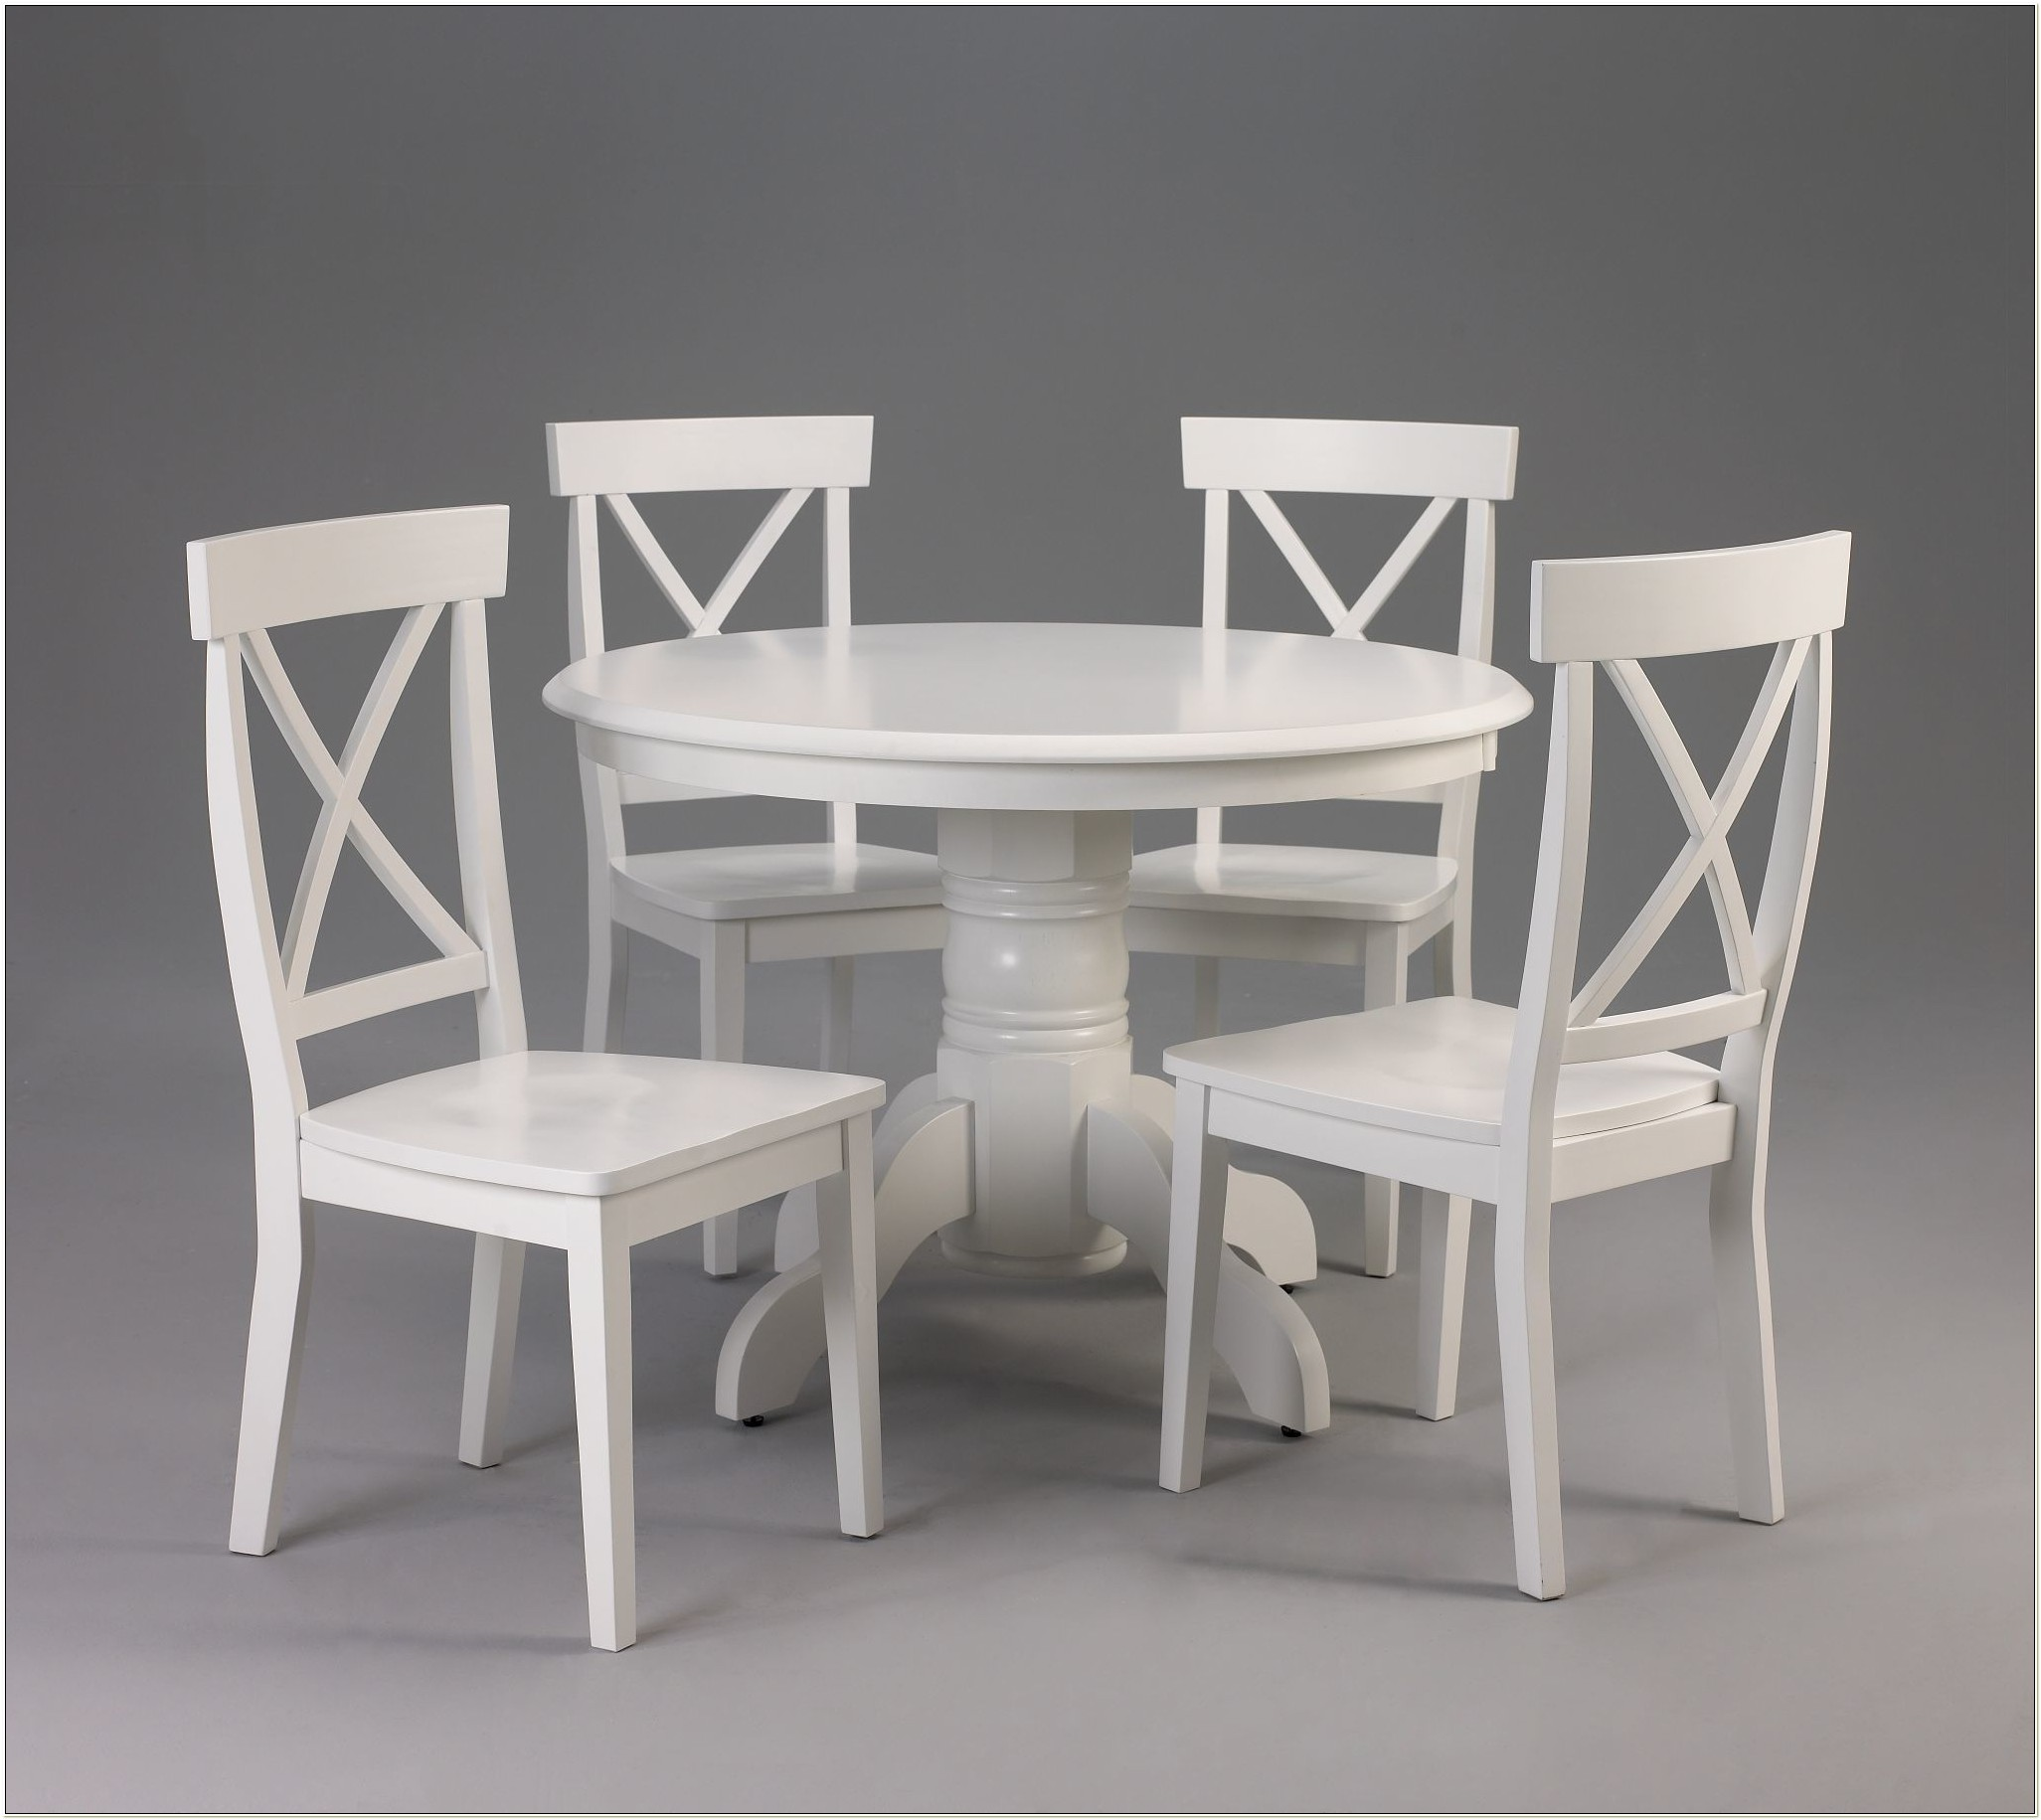 Ikea Table And Chairs 2021